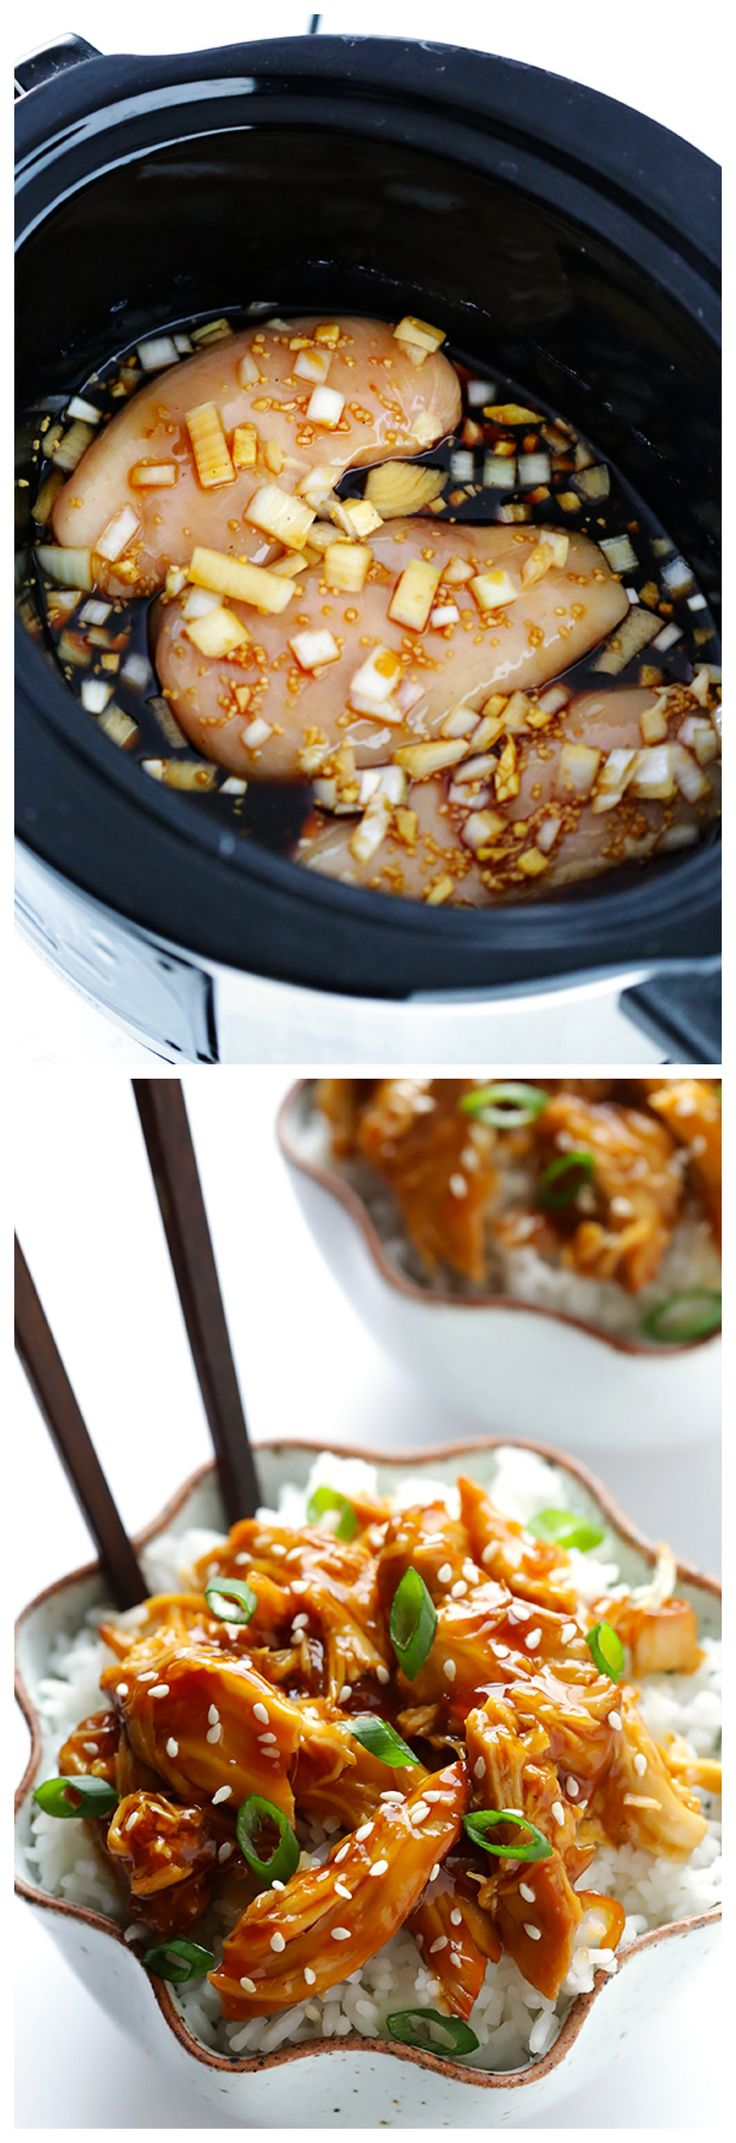 Slow Cooker Teriyaki Chicken -- easy to make, and perfect for serving over rice, or in sandwiches, or whatever sounds good!